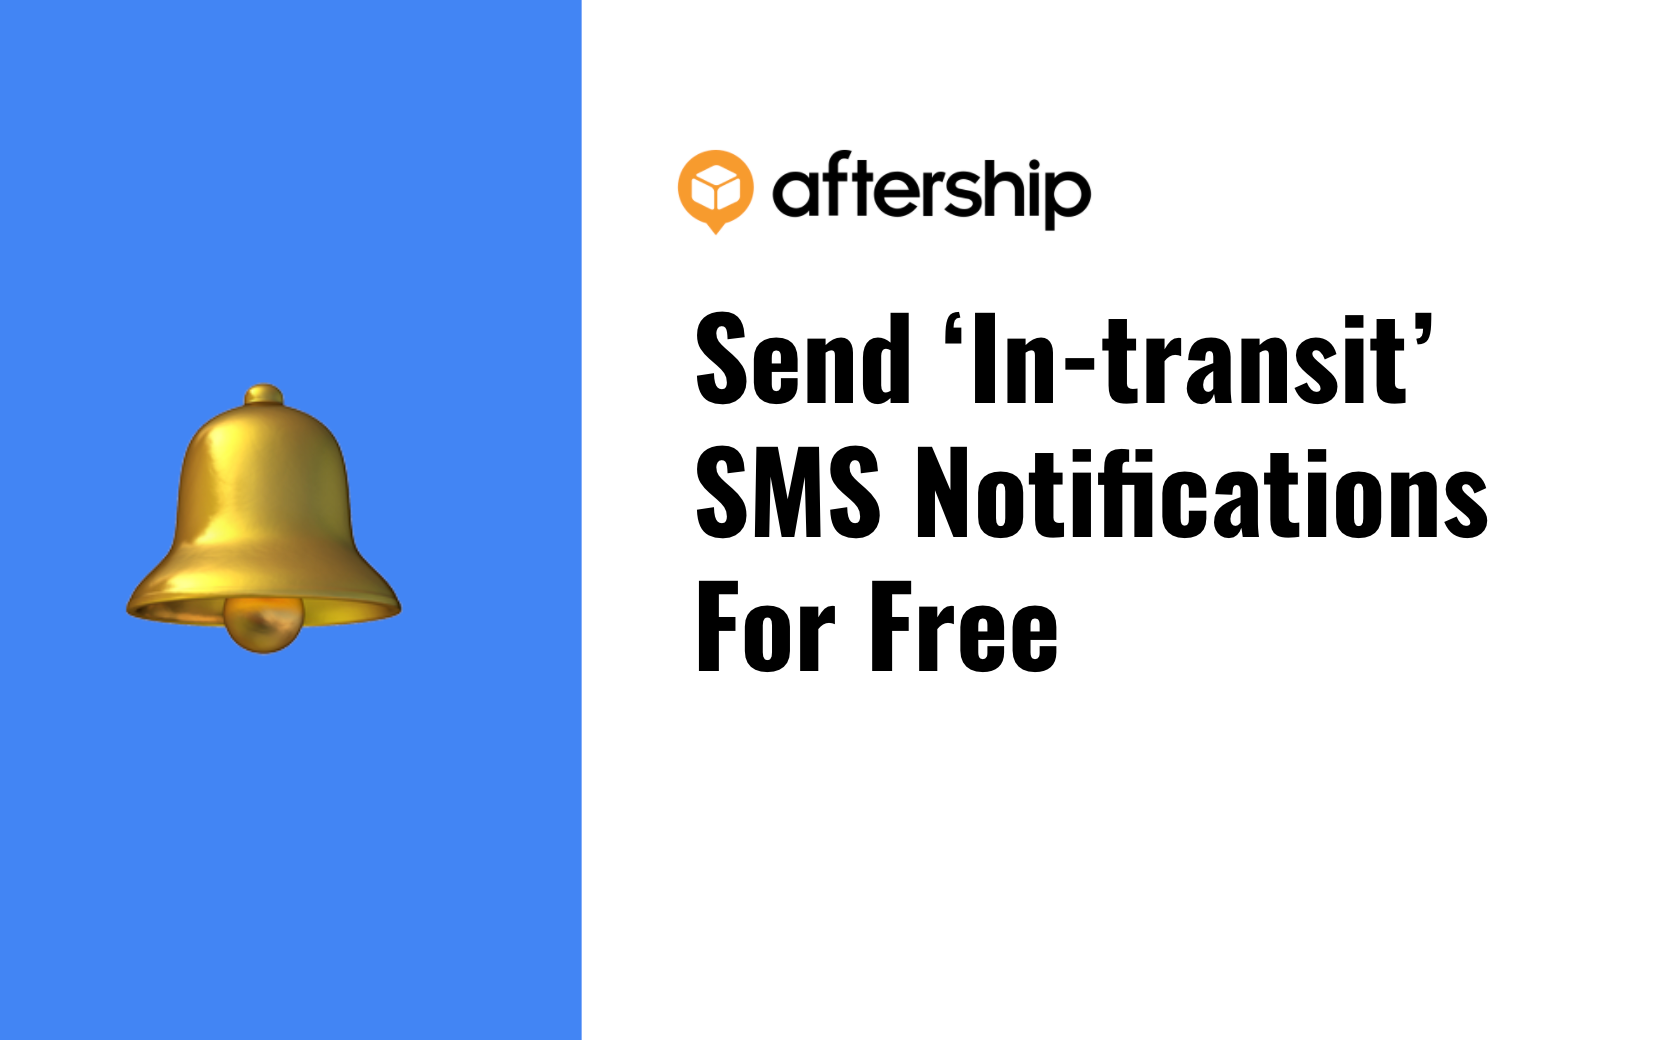 AfterShip's In-transit SMS notifications: An Easier Way to Win Customer Loyalty